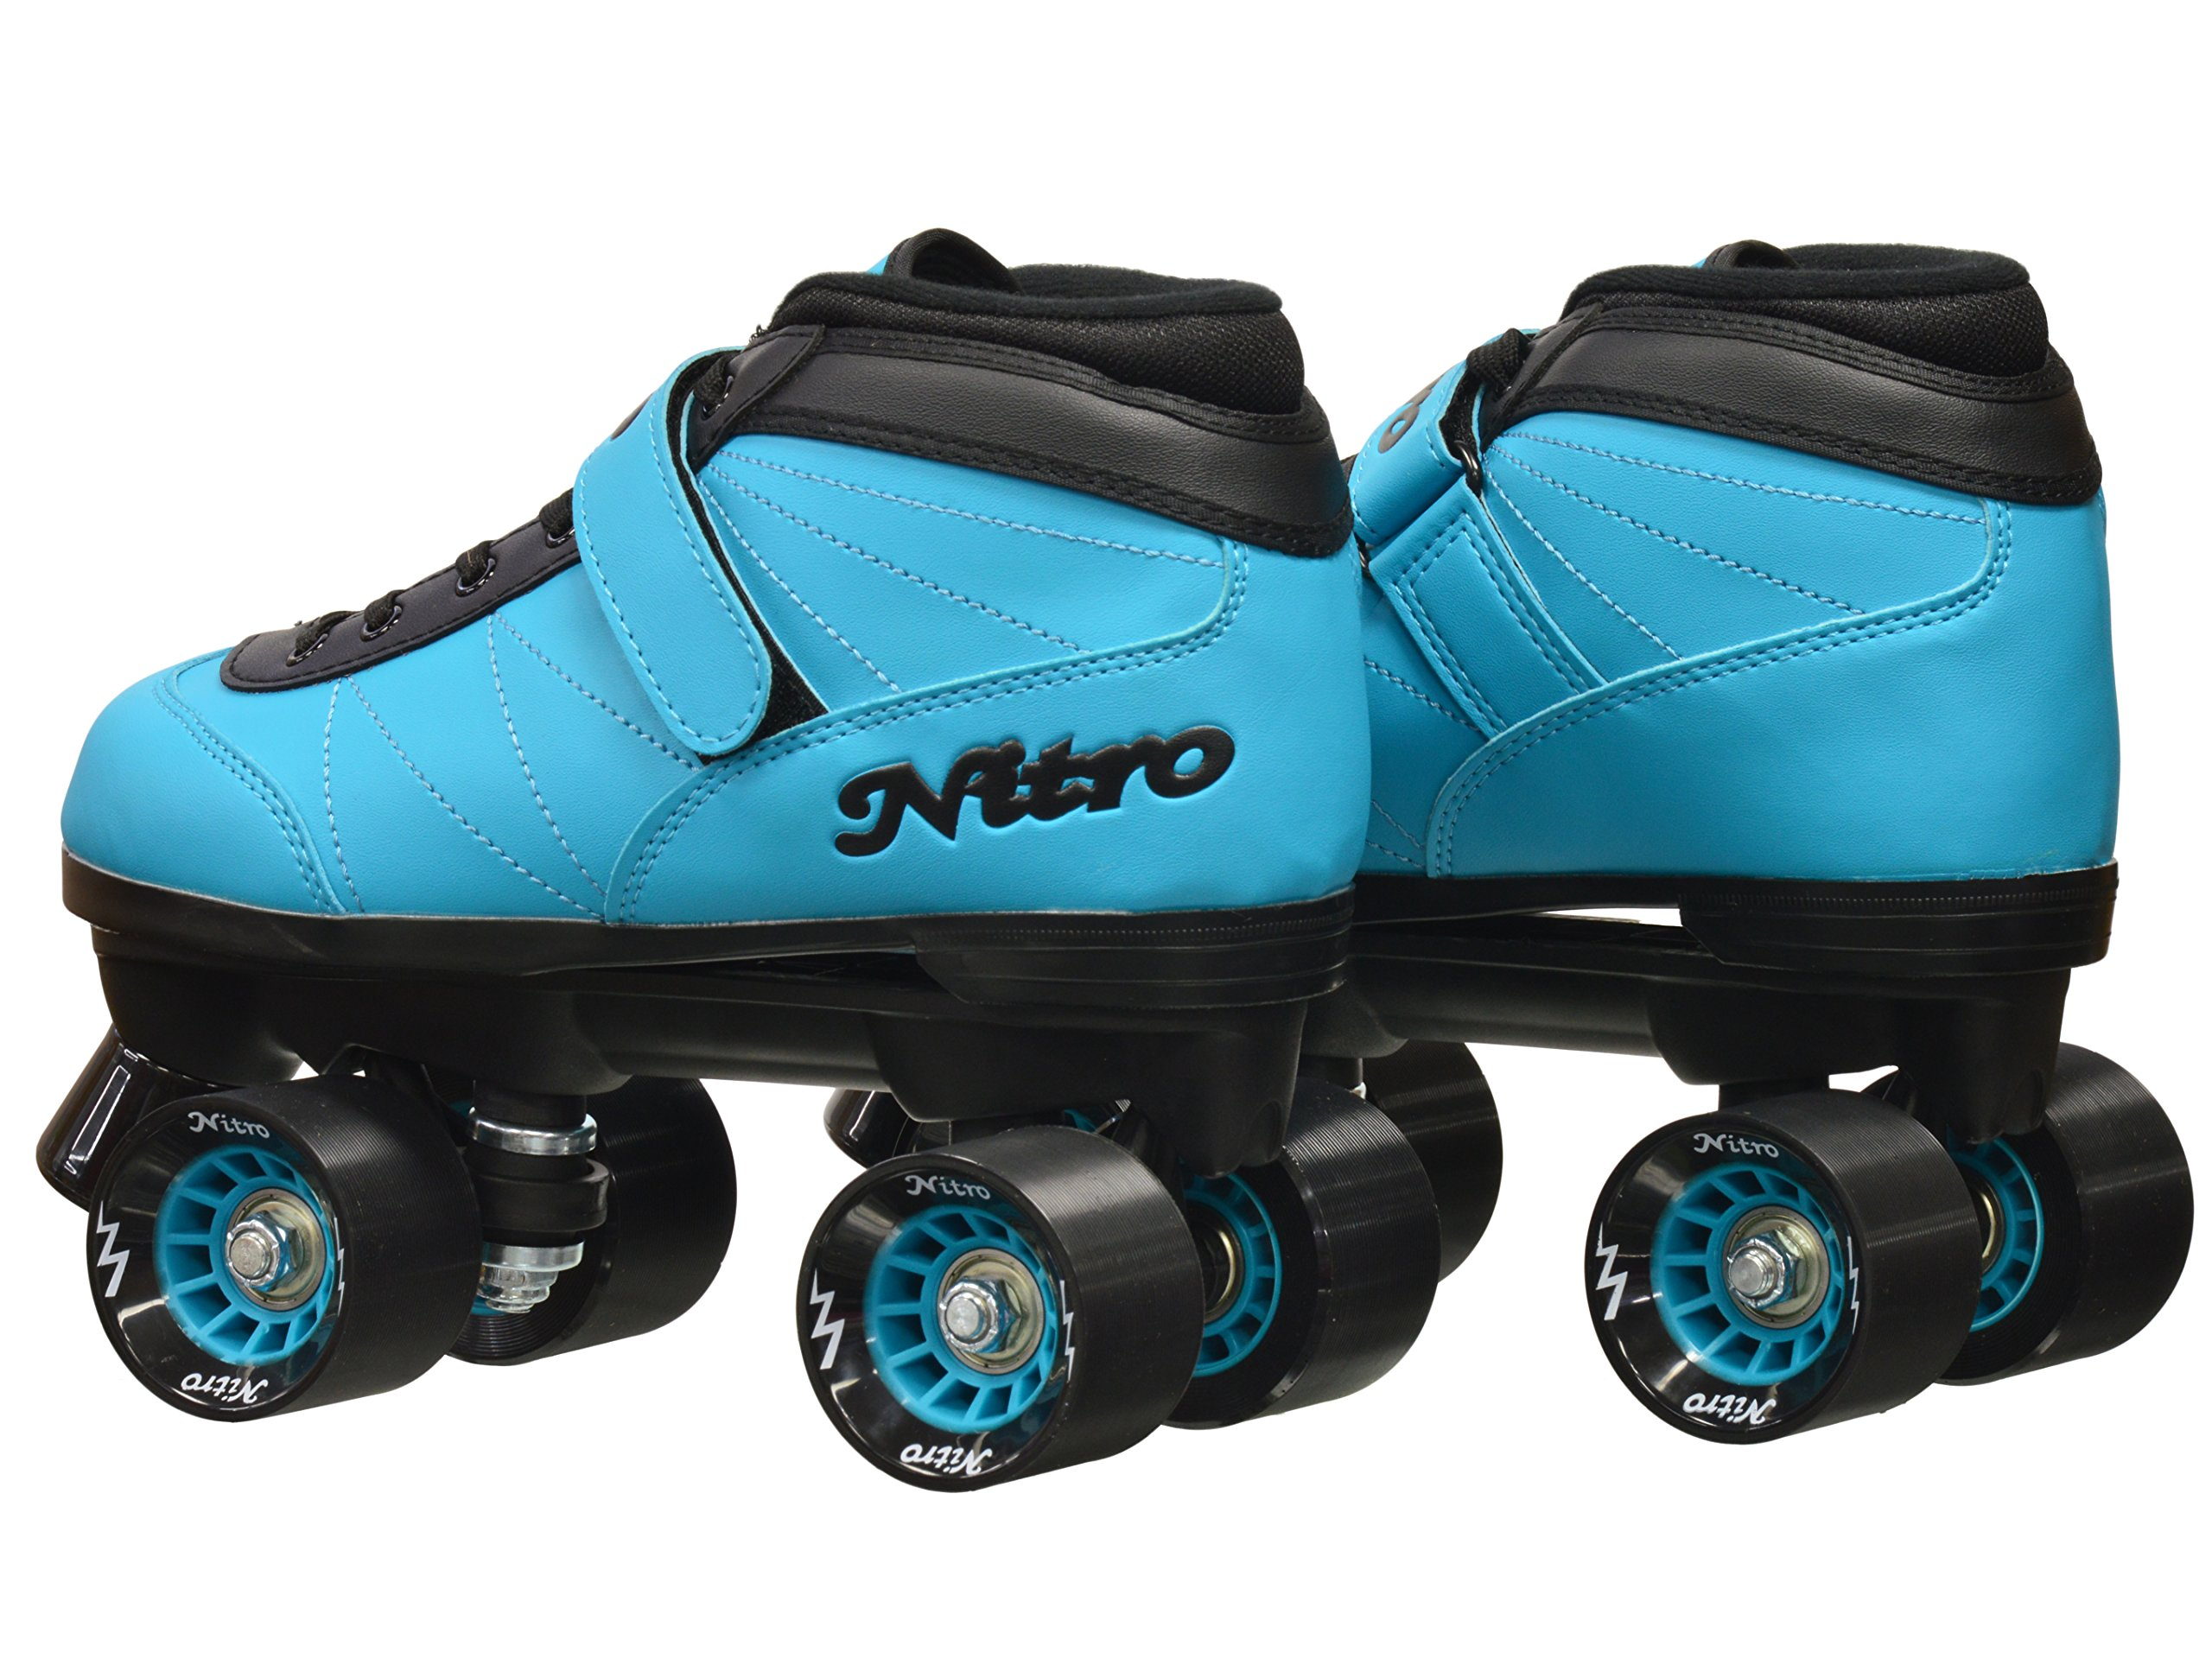 New! Epic Nitro Turbo Blue Indoor / Outdoor Quad Roller Speed Skates w/ 2 Pair of Laces (Blue & Black) (Mens 9) by Epic Skates (Image #5)